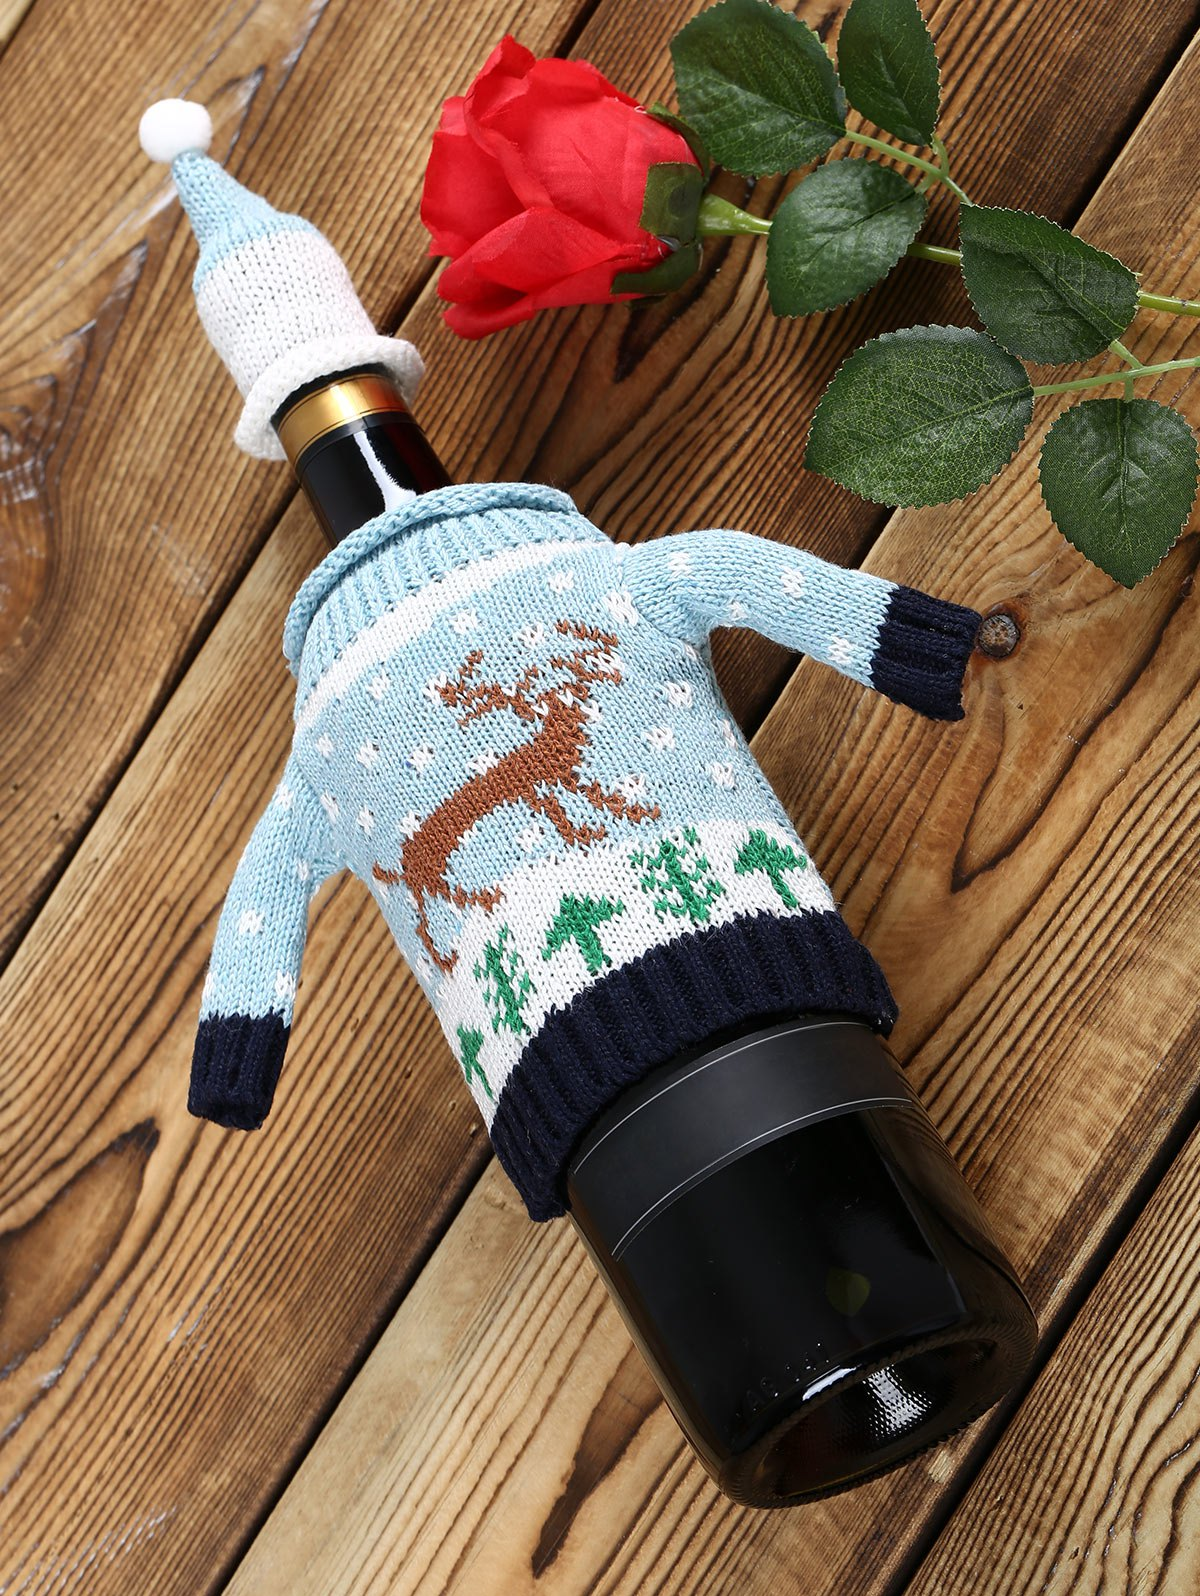 Christmas Reindeer Sweater Wine Bottle CoverHOME<br><br>Size: 1 SET; Color: CLOUDY; Event &amp; Party Item Type: Party Decoration; Occasion: Brithday Party,Chinese New Year,Christmas,New Year,Party,Thanksgiving; Weight: 0.0500kg; Package Contents: 1 x Wine Bottle Cover(Set);